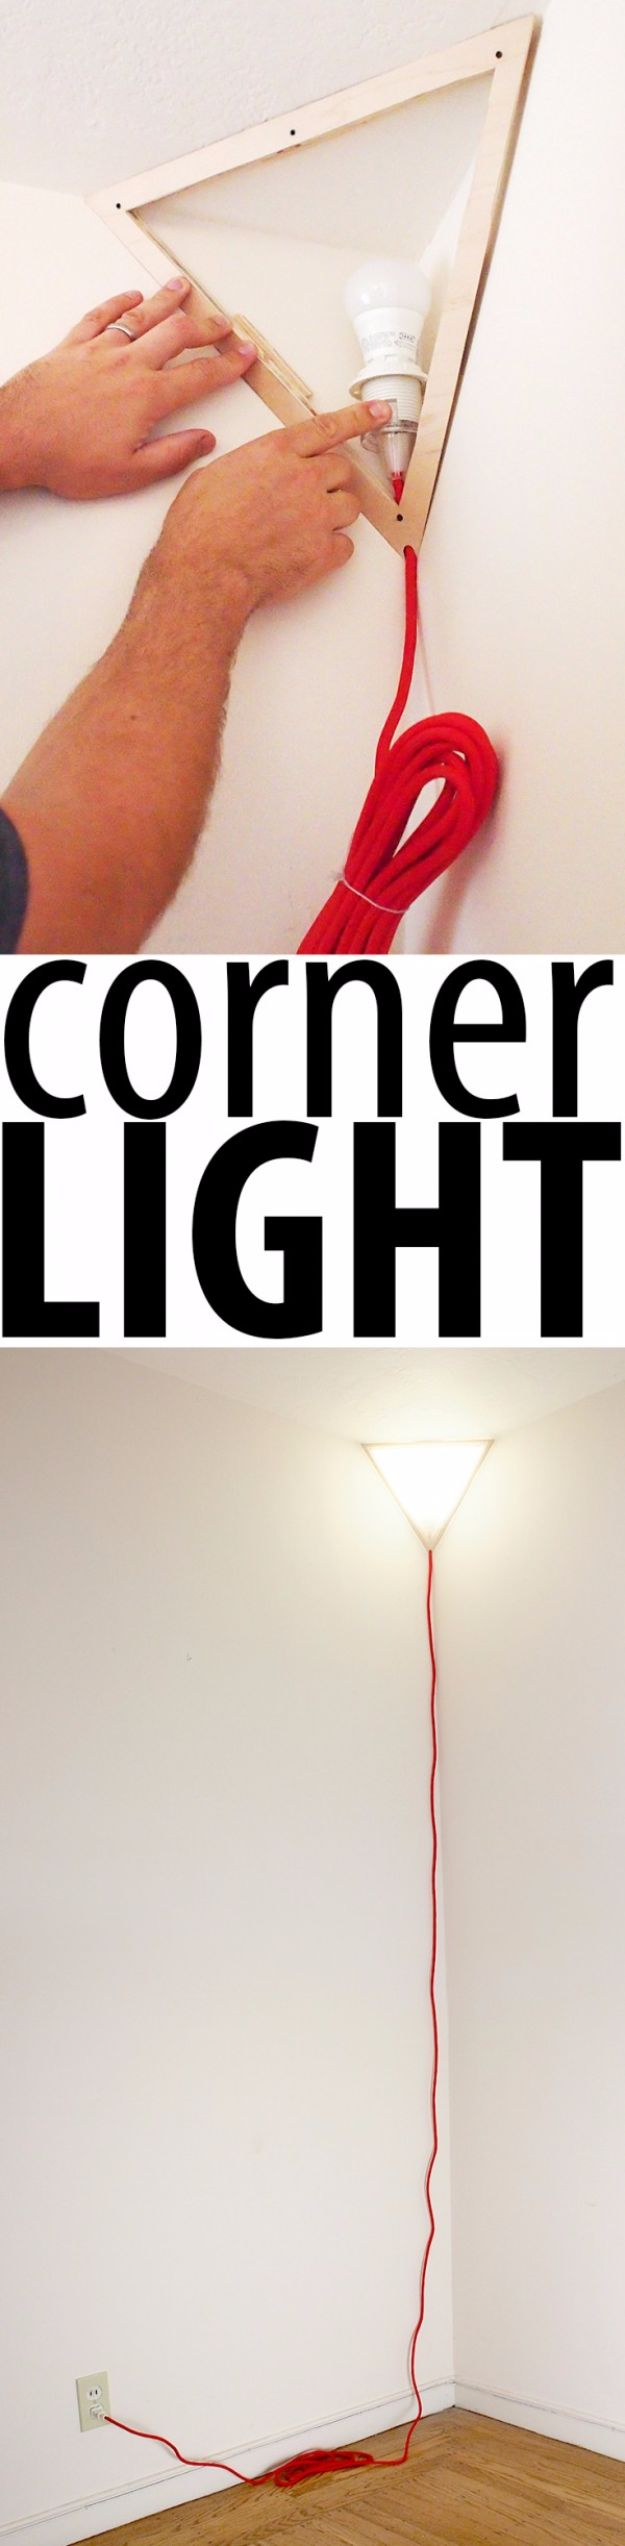 DIY Lighting Ideas and Cool DIY Light Projects for the Home - Corner Light - Easy DIY Ideas for Chandeliers, lights, lamps, awesome pendants and creative hanging fixtures, complete with tutorials with instructions. Cheap do it yourself lighting tutorials for indoor - bedroom, living room, bathroom, kitchen DIY Projects and Crafts for Women and Men http://diyjoy.com/diy-indoor-lighting-ideas